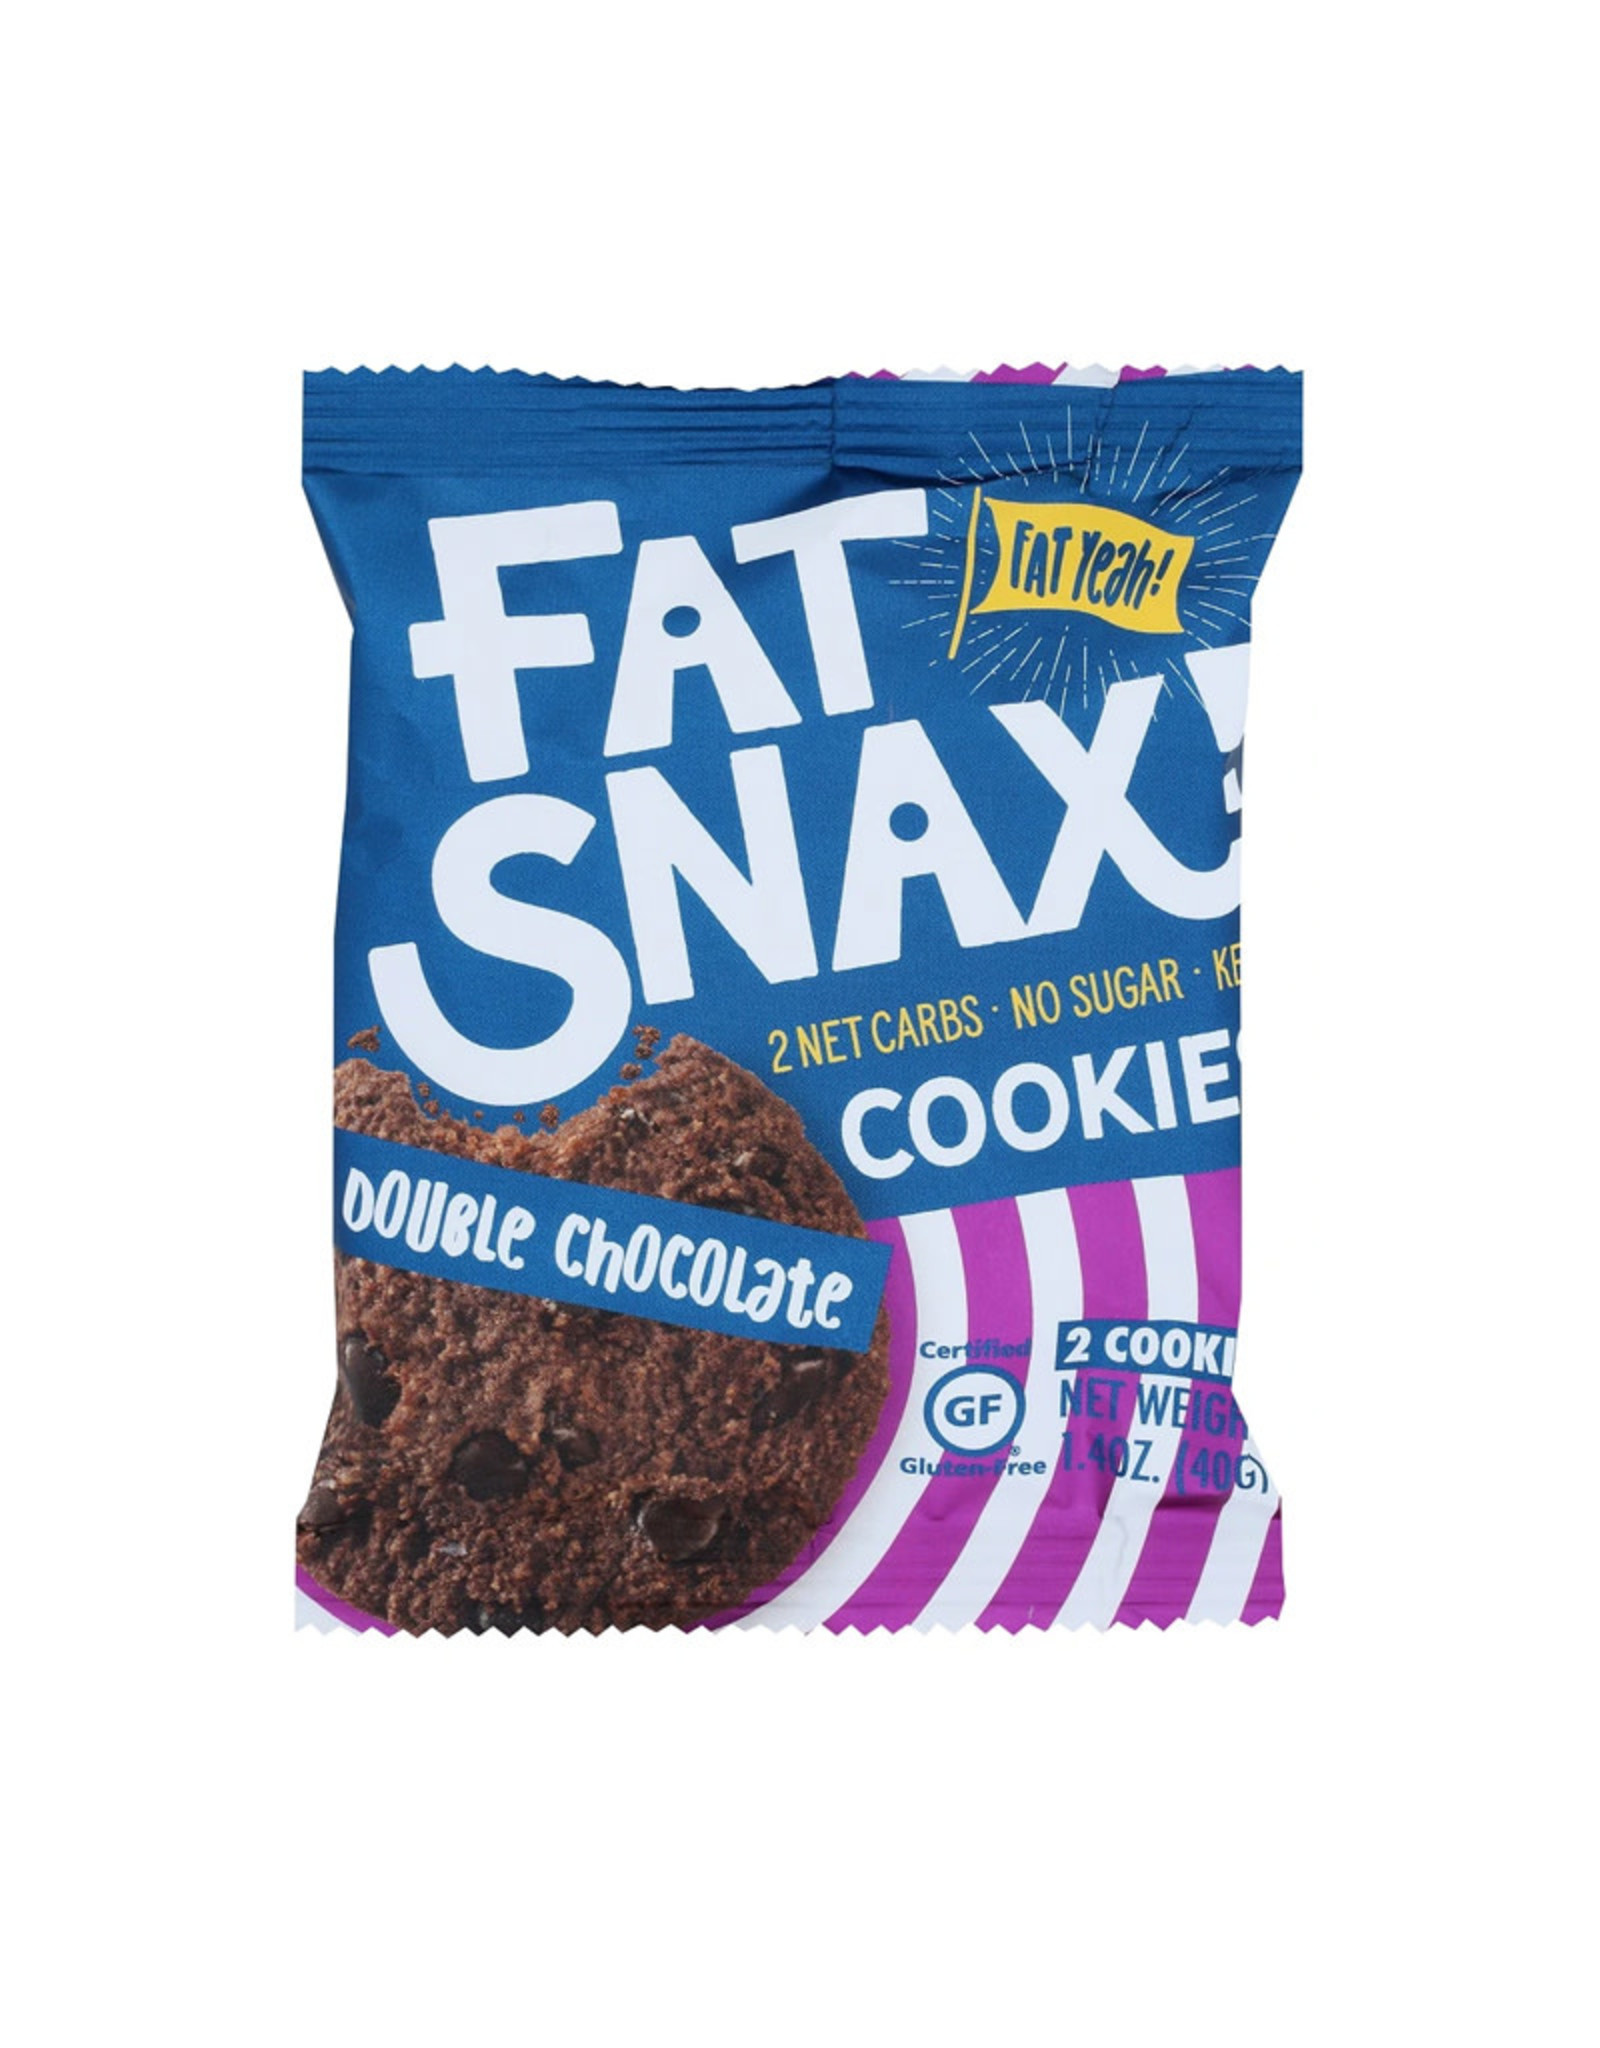 Fatsnax Fatsnax - Cookie, Double Chocolate Chip